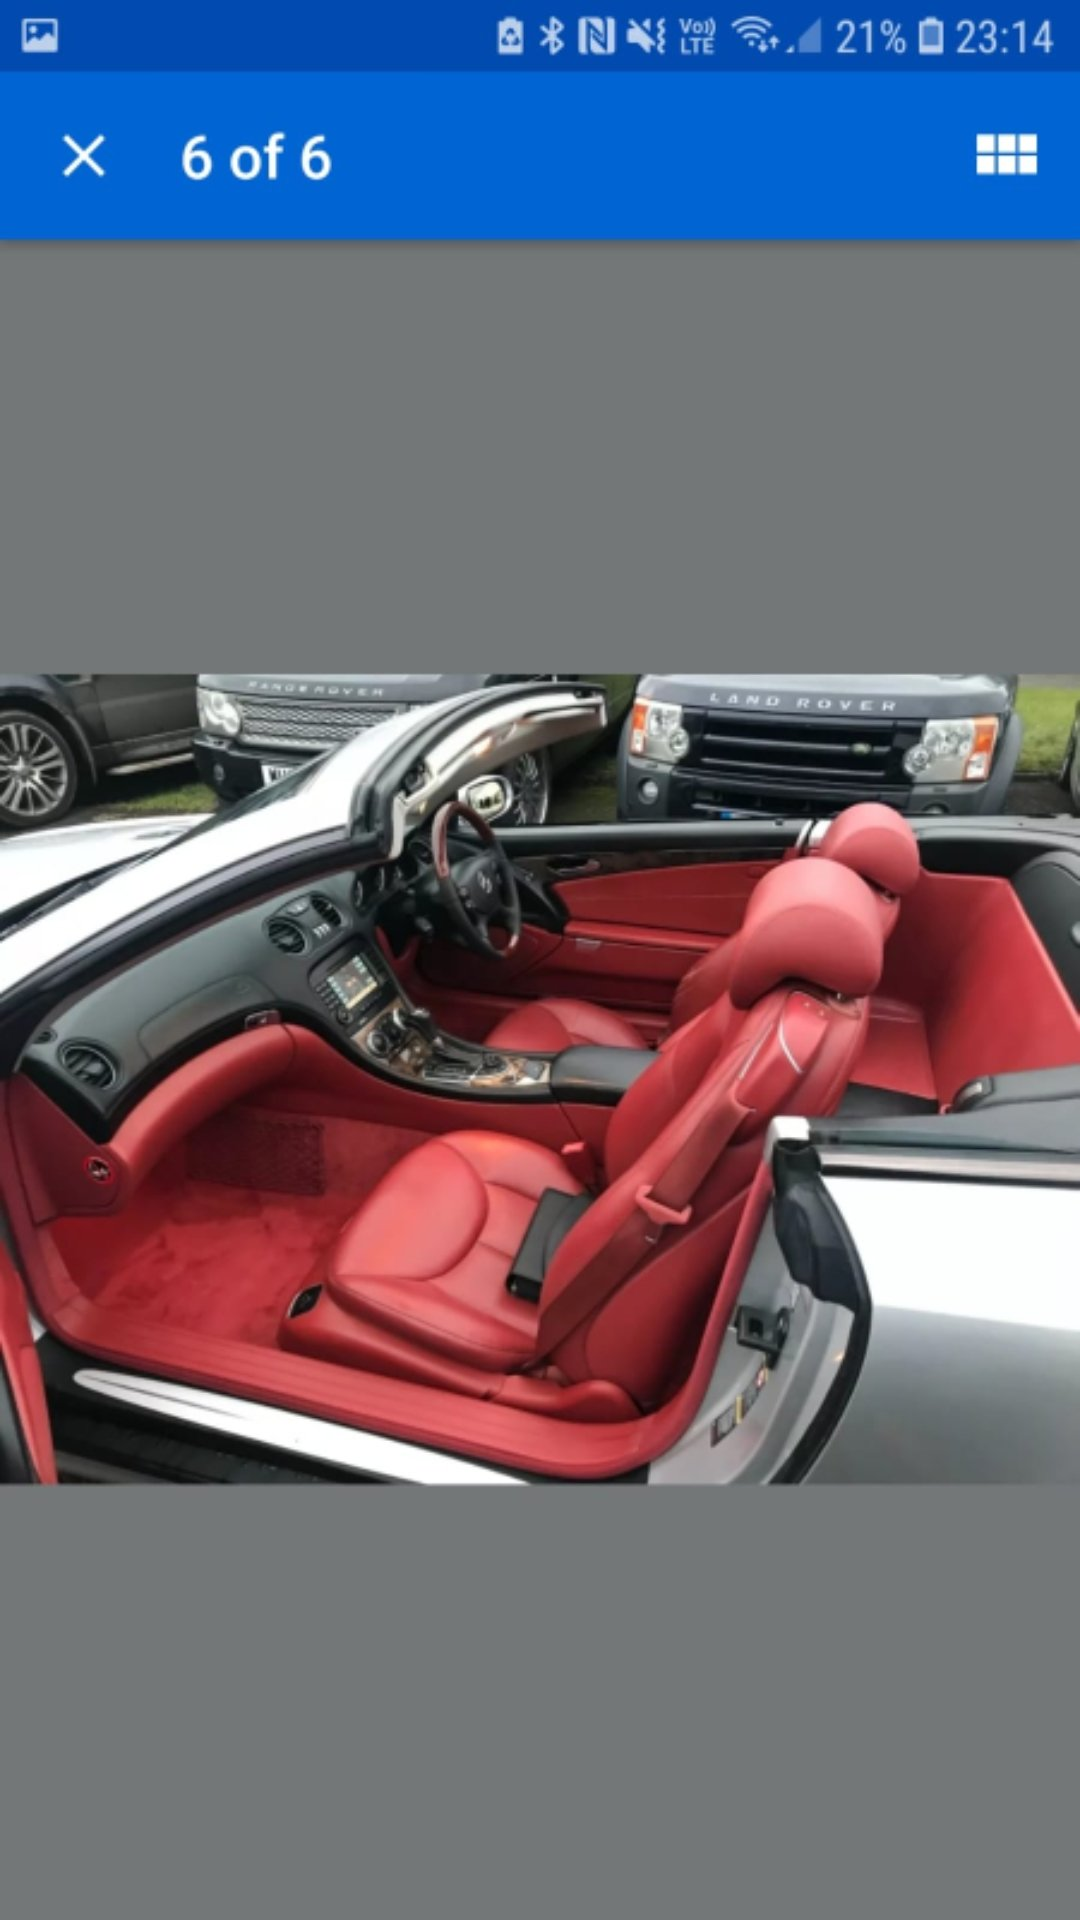 2005 MINT CONDITION MERCEDES SL   For Sale (picture 2 of 4)